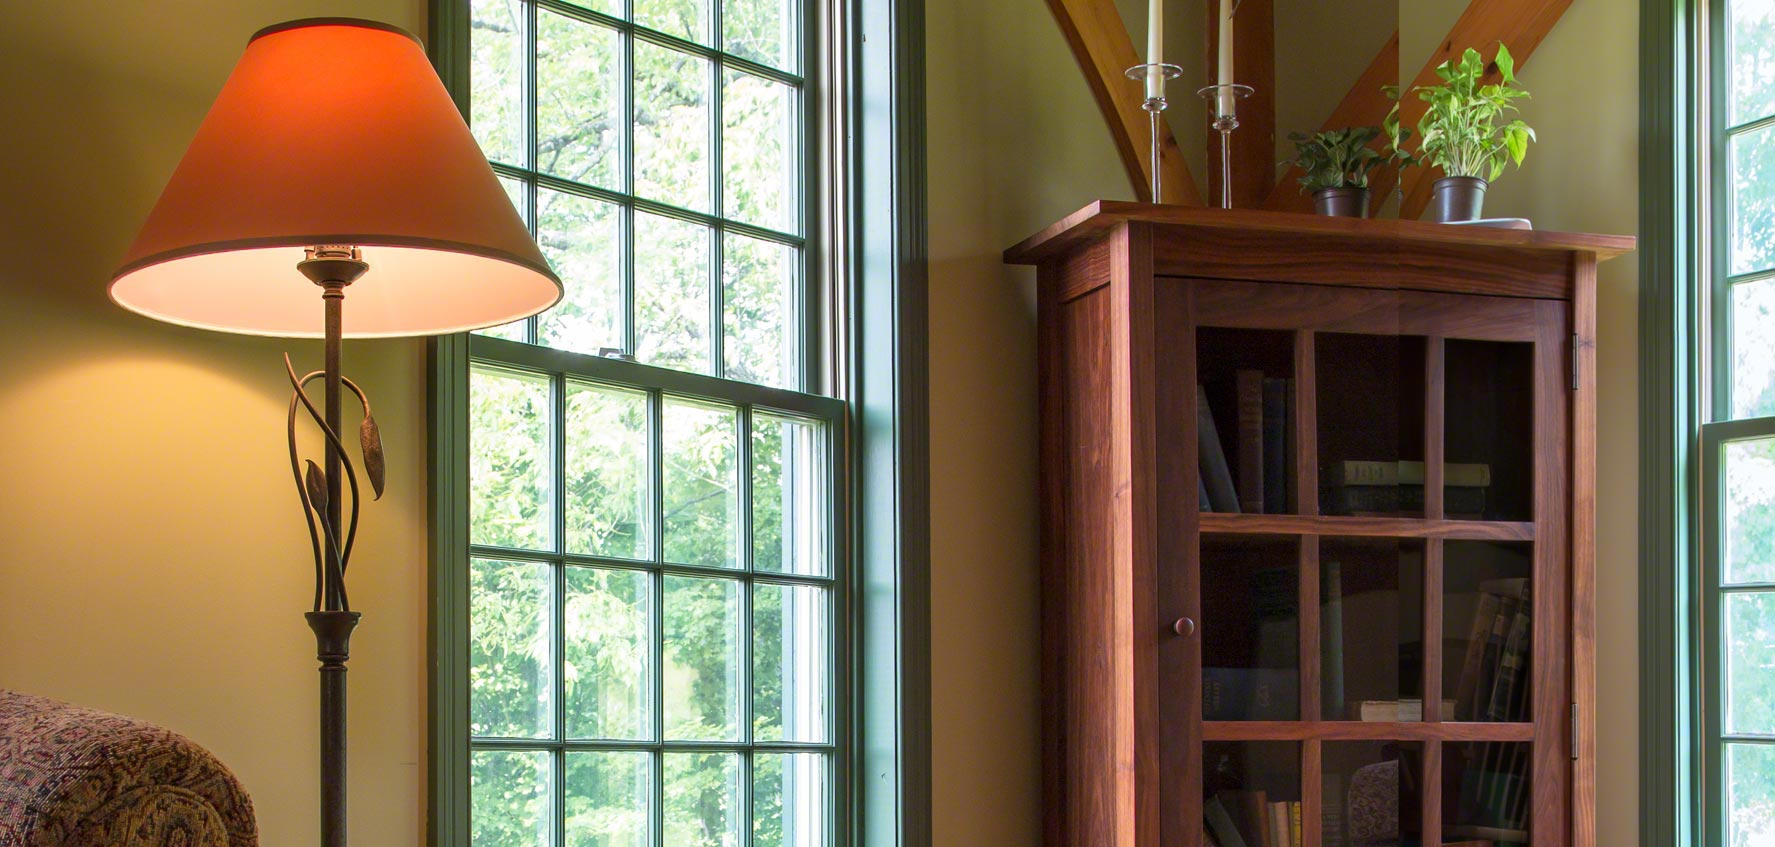 Floor lamps by hubbardton forge vermont woods studios floor lamps aloadofball Choice Image